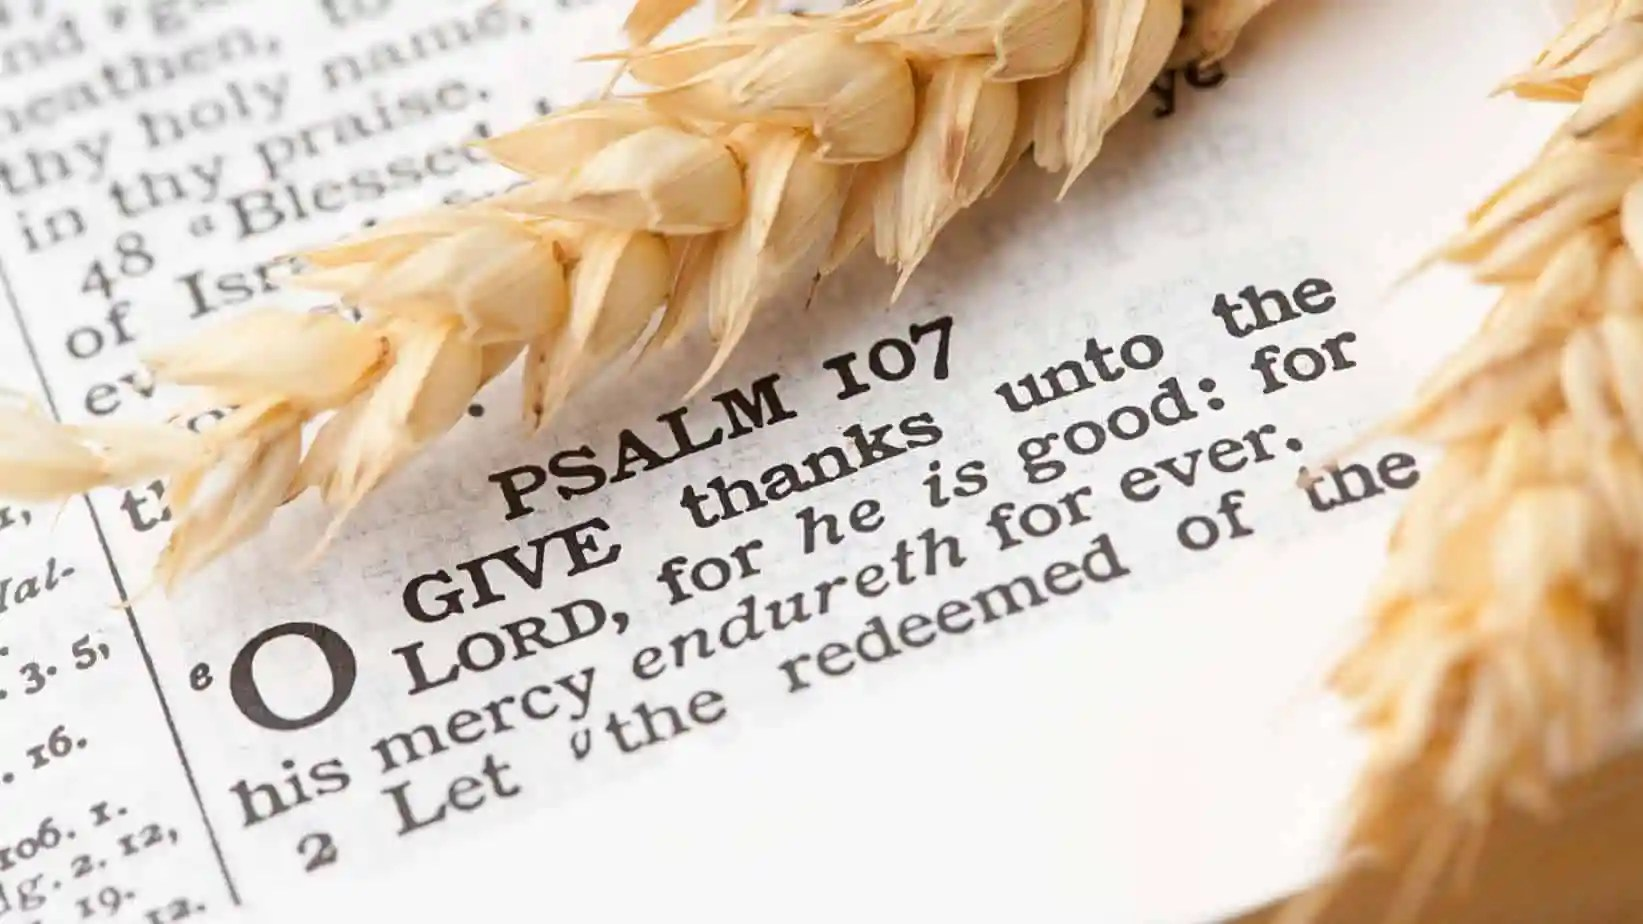 Top 10 Thanksgiving Bible Verses Scriputres On Gratitude Thankfulness